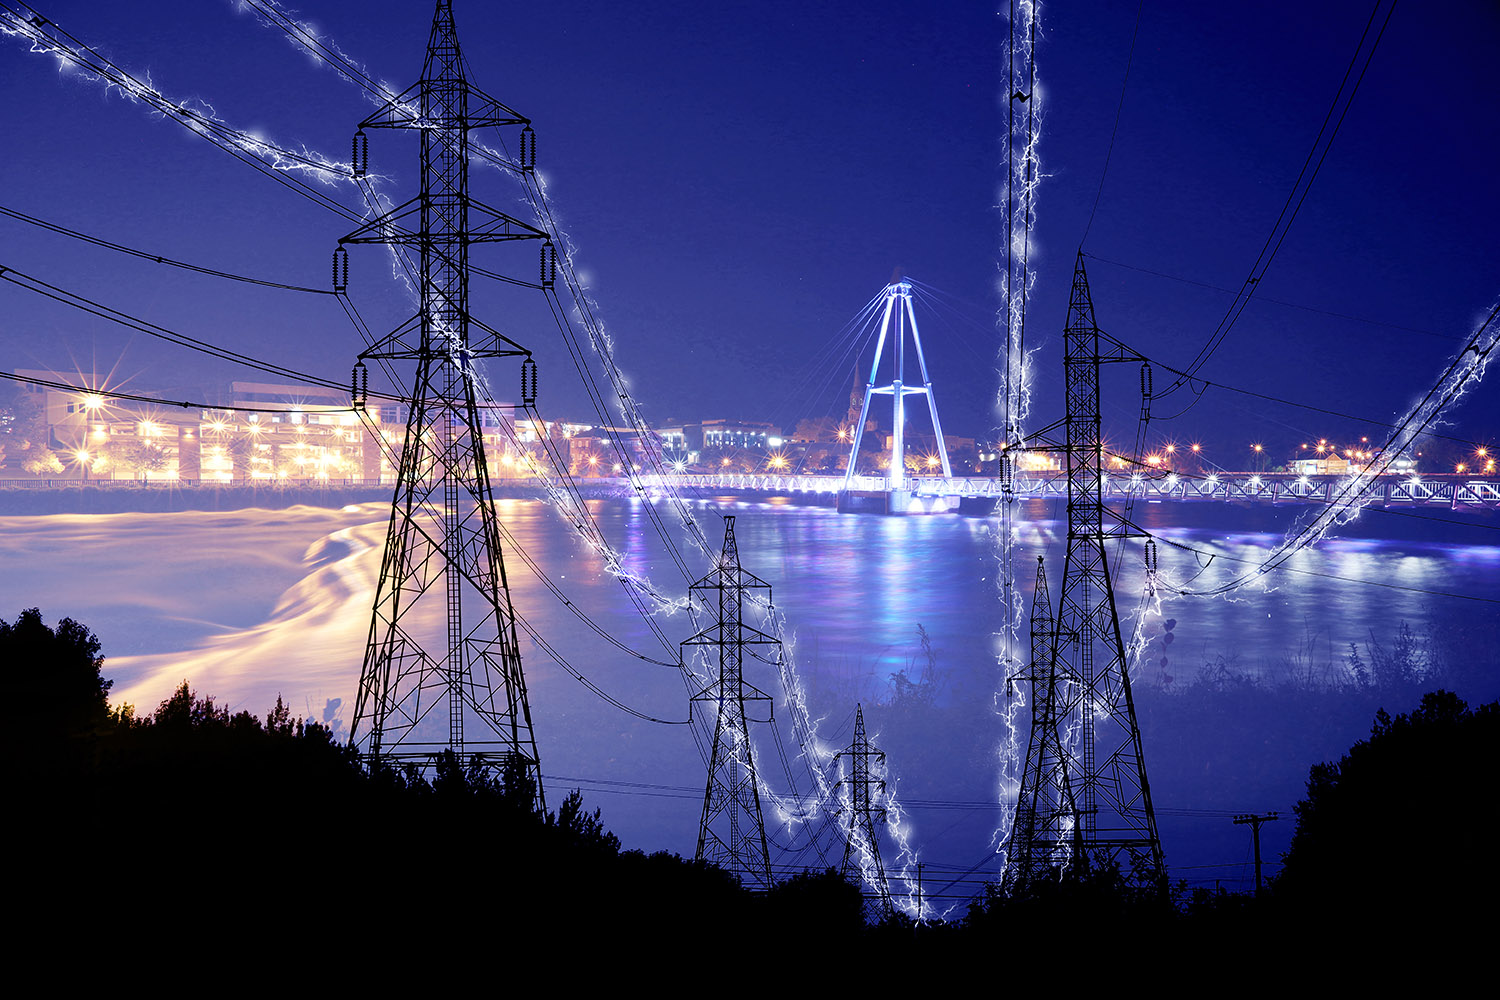 Small Town Electrification at Night in Blue - stock photos and royalty-free images